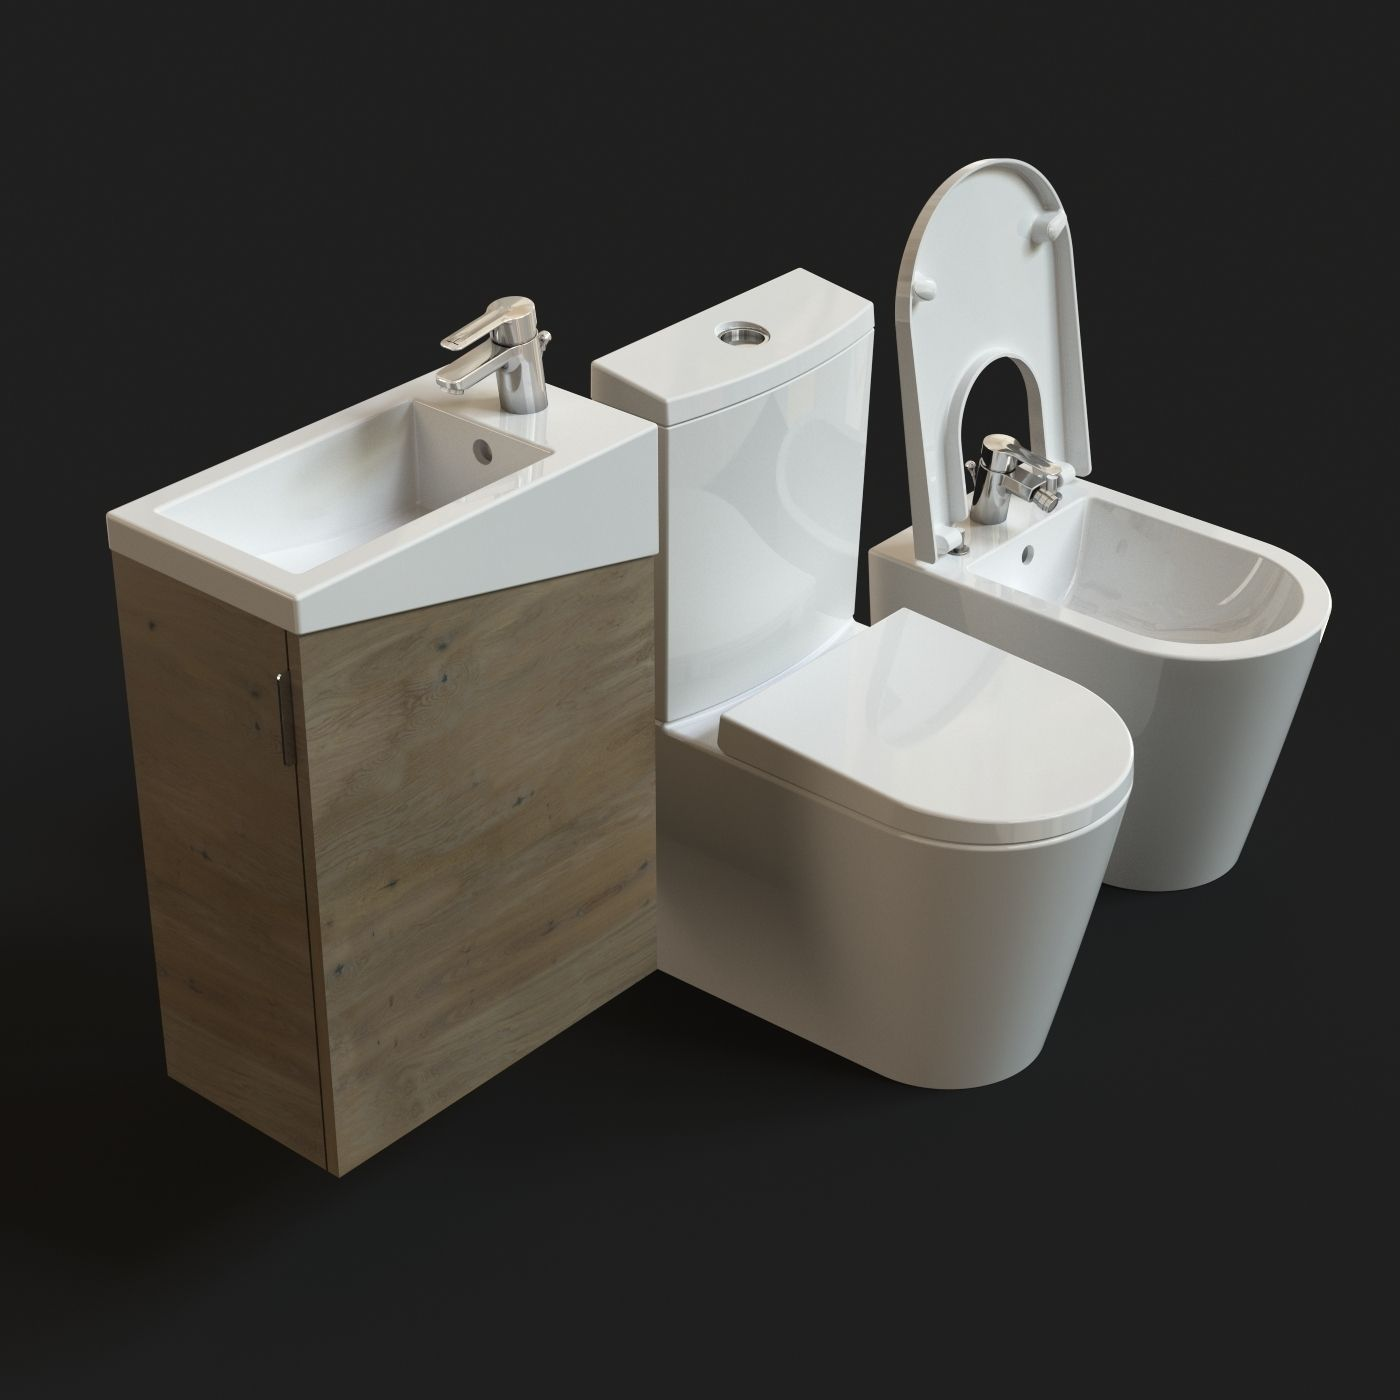 Urb y plus sanitaryware free model free 3d model max obj for Bathroom design 3d model